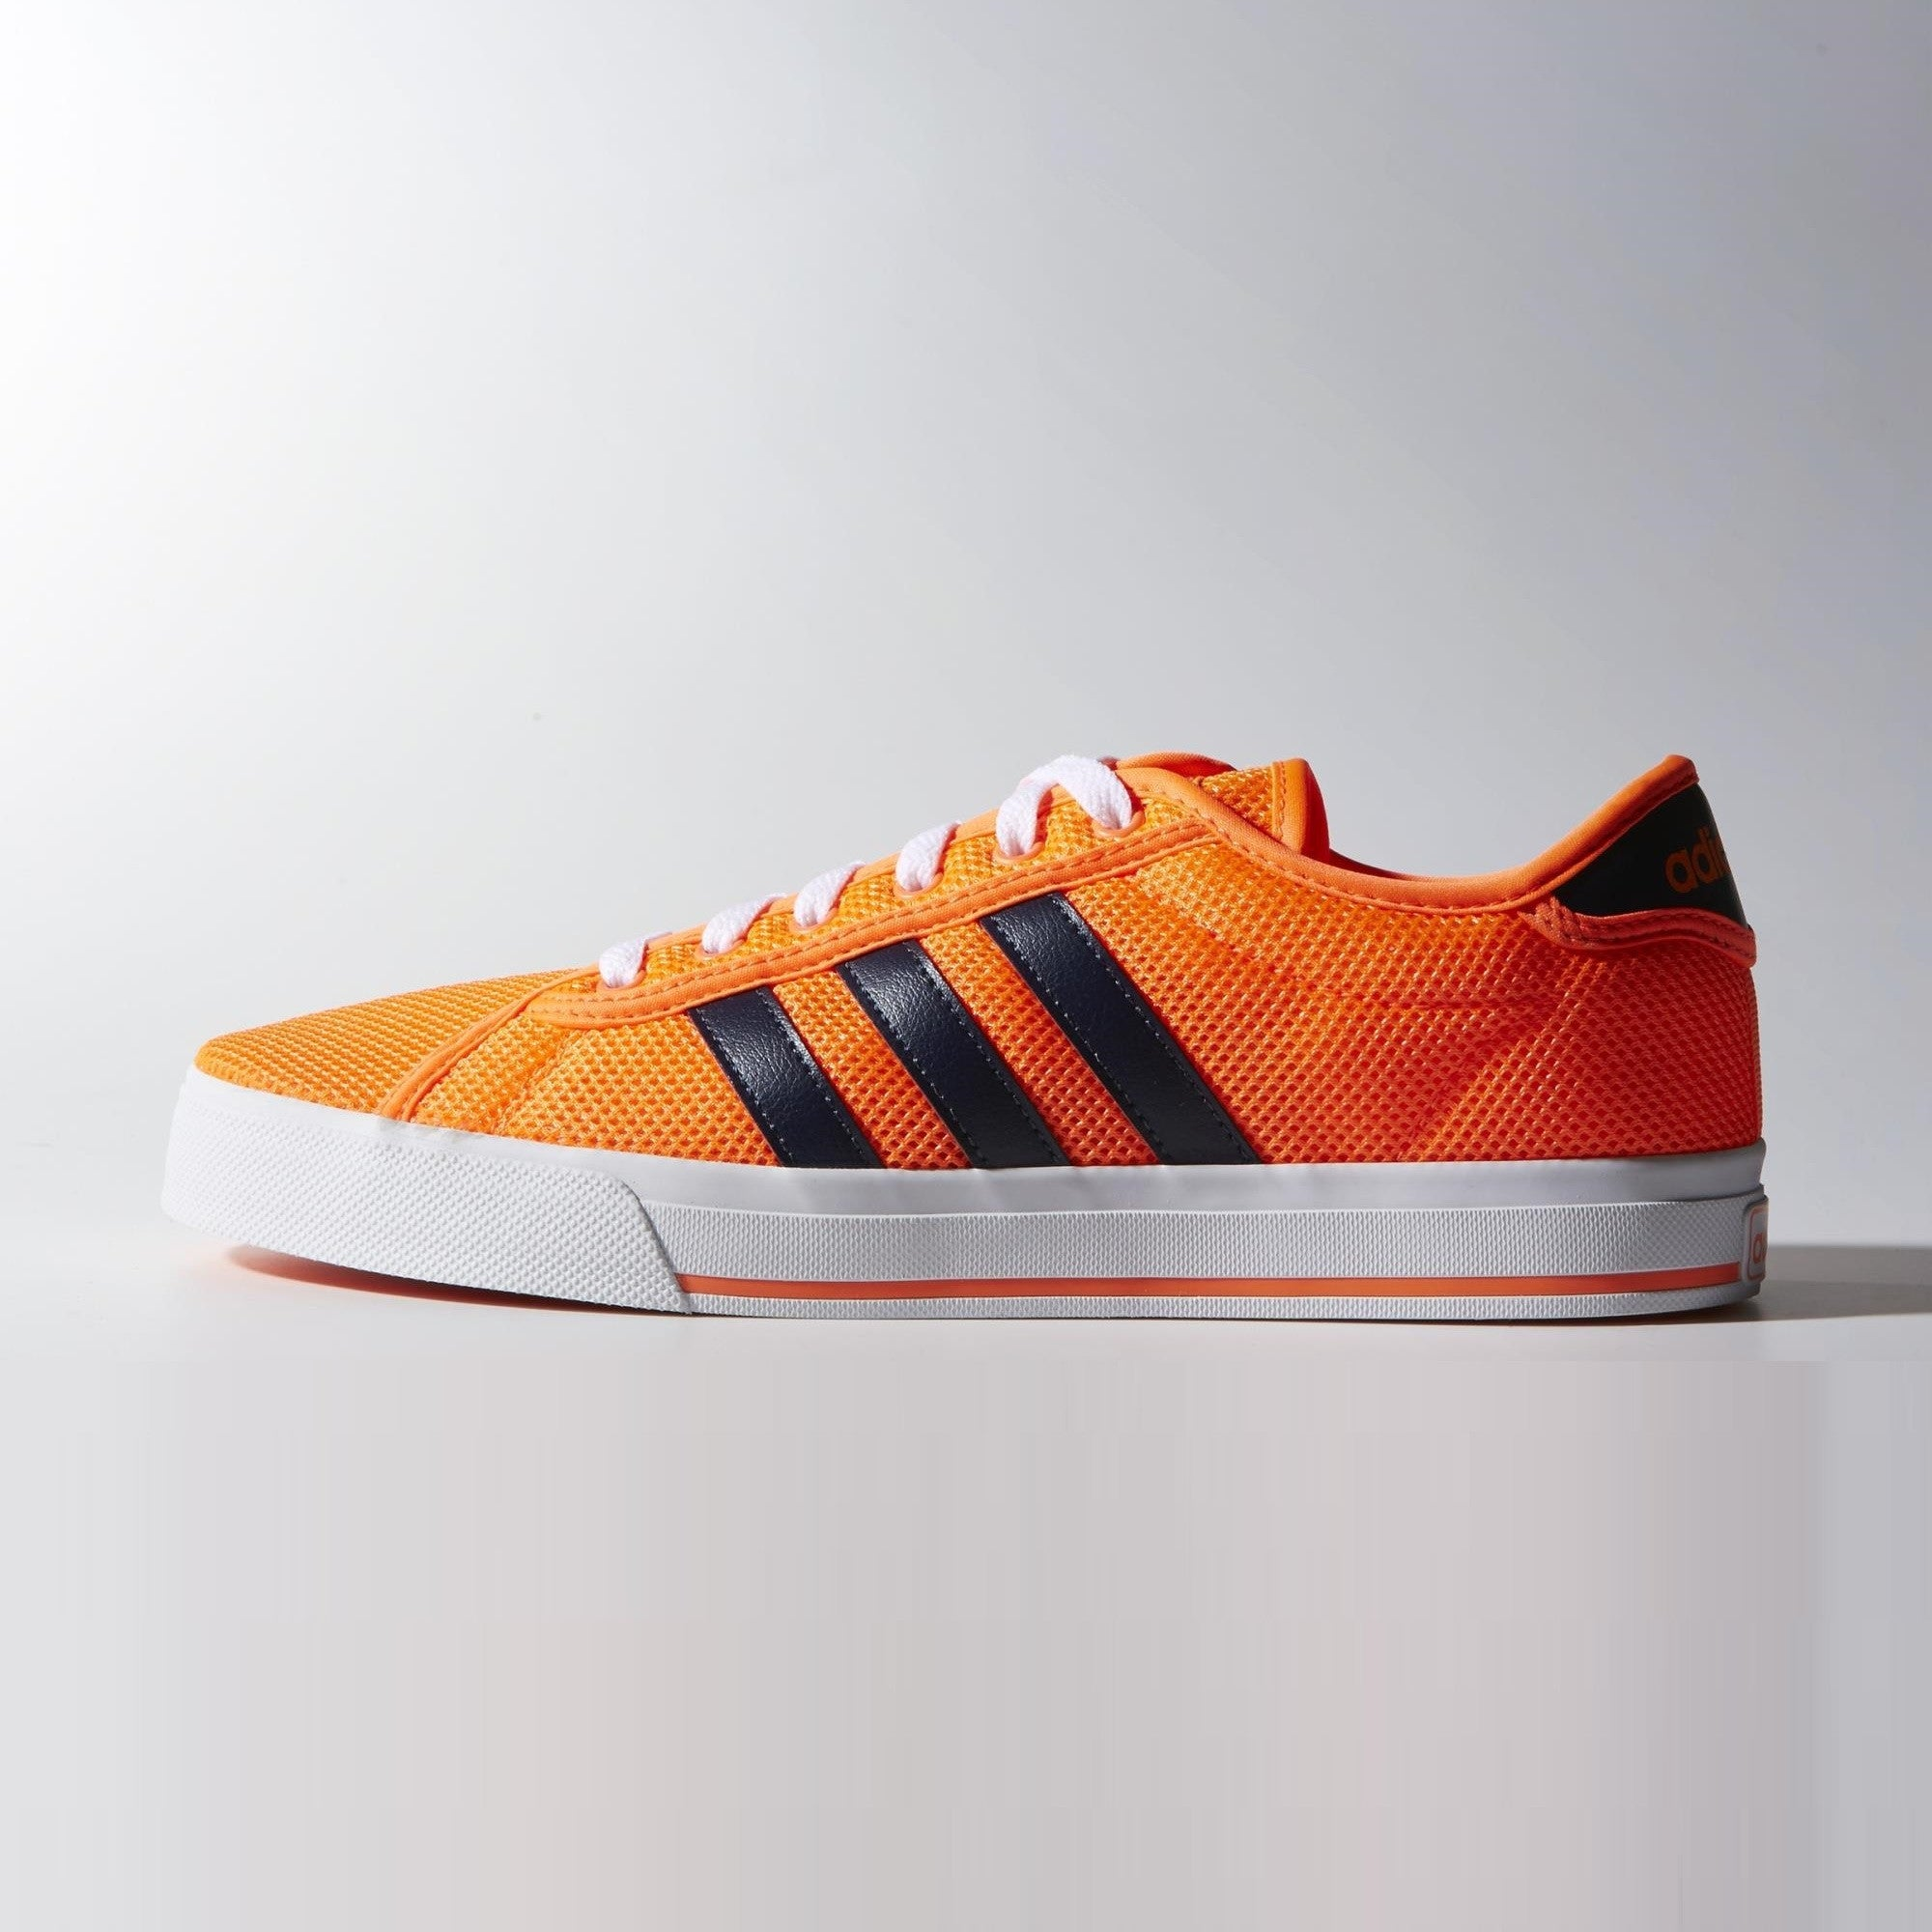 3910770ff ... New Adidas NEO Daily Bind Vulcanized Low Men Orange/Black/White F97748  Trainers Shoes ...